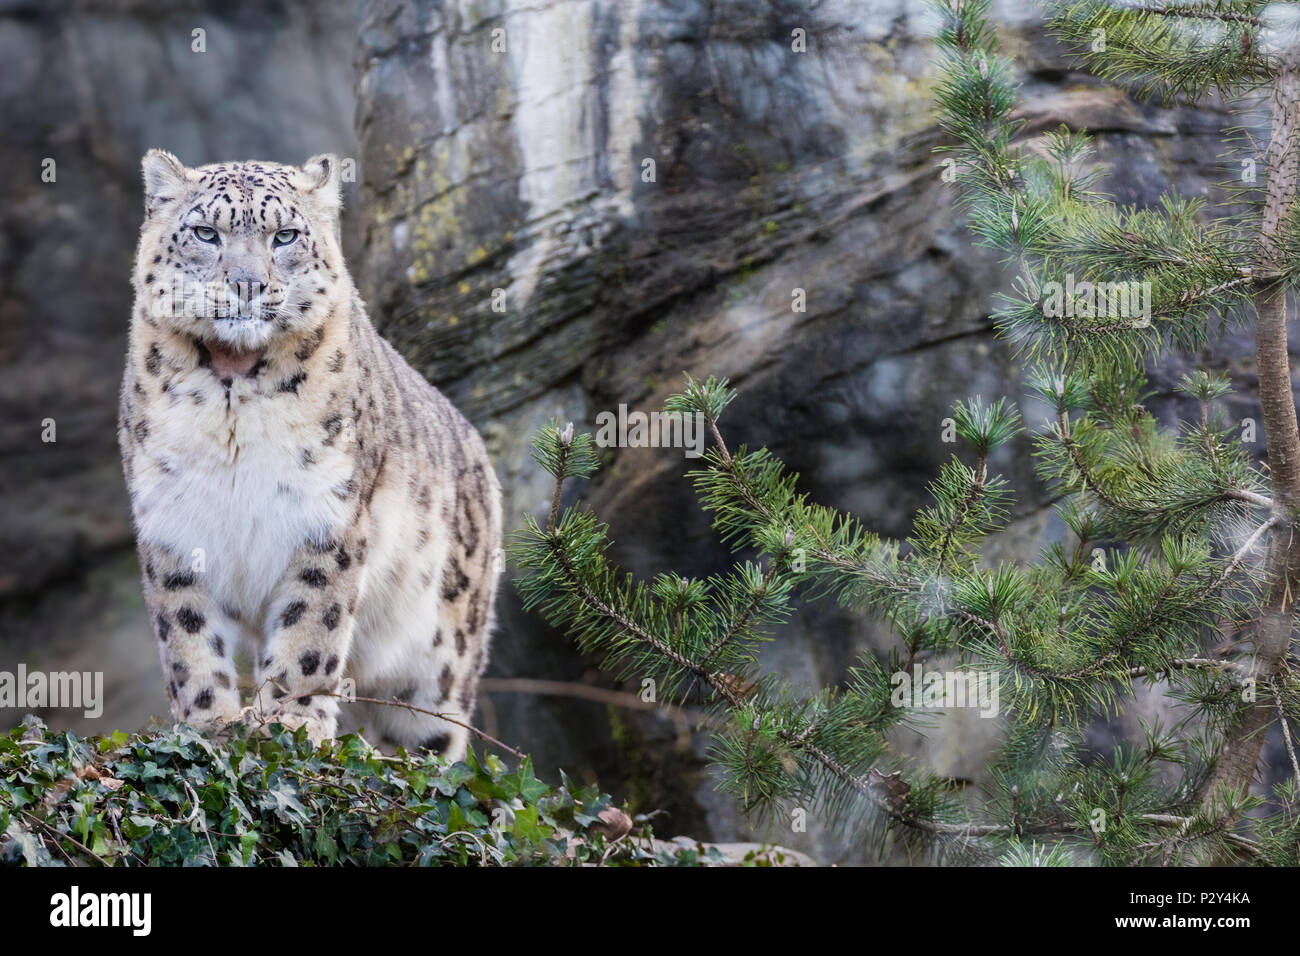 Adult snow leopard standing on rocky ledge Stock Photo